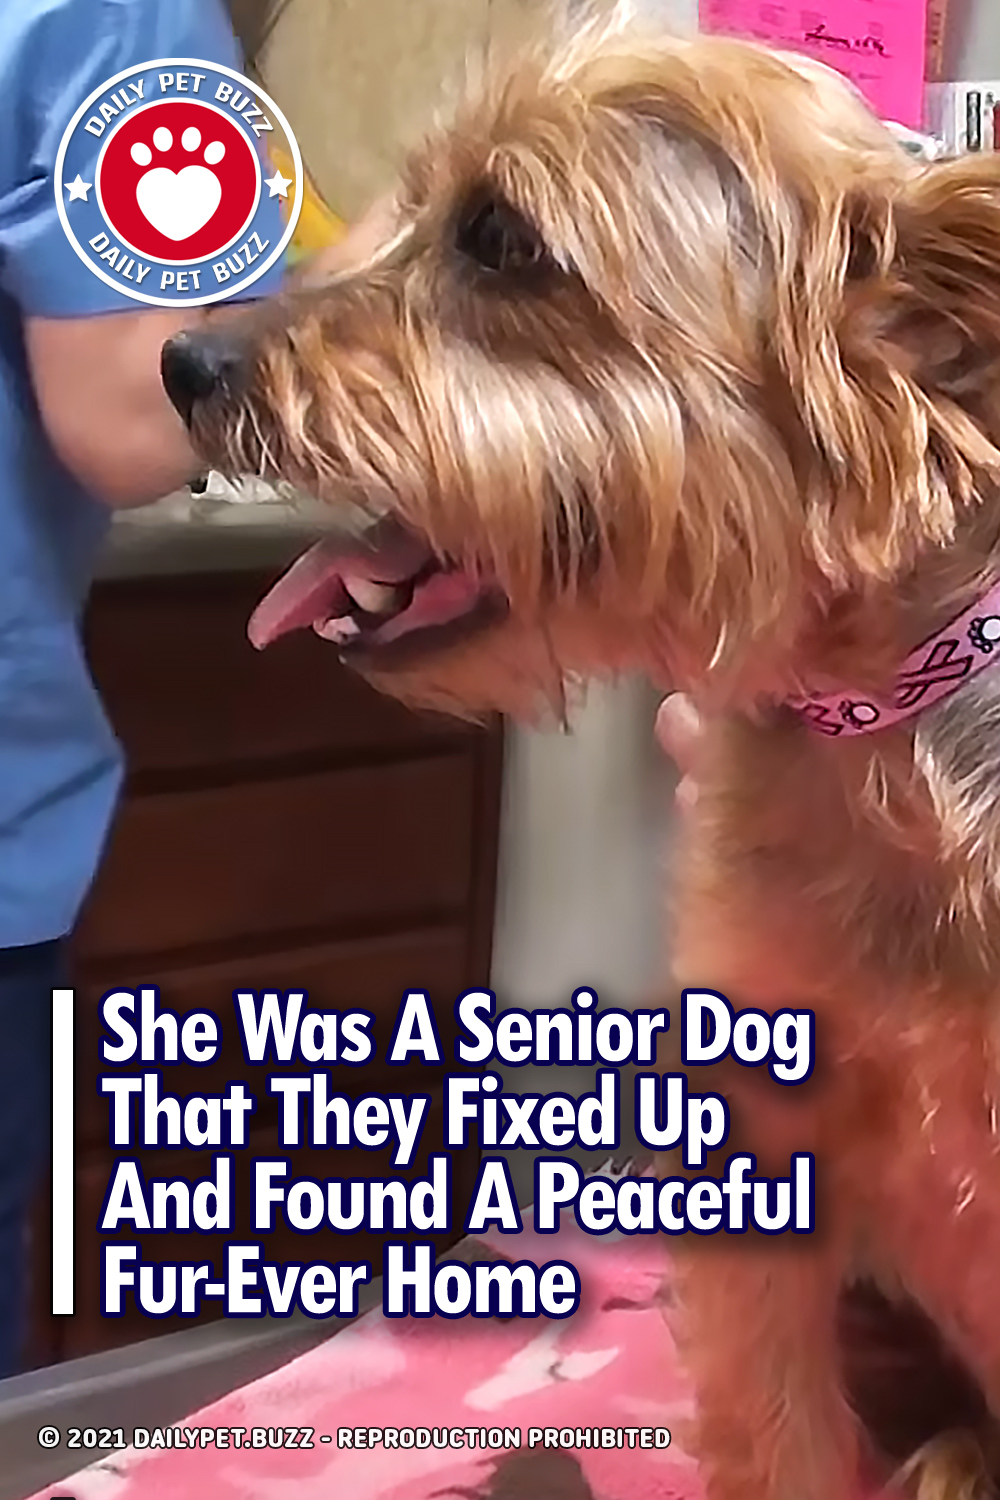 She Was A Senior Dog That They Fixed Up And Found A Peaceful Fur-Ever Home